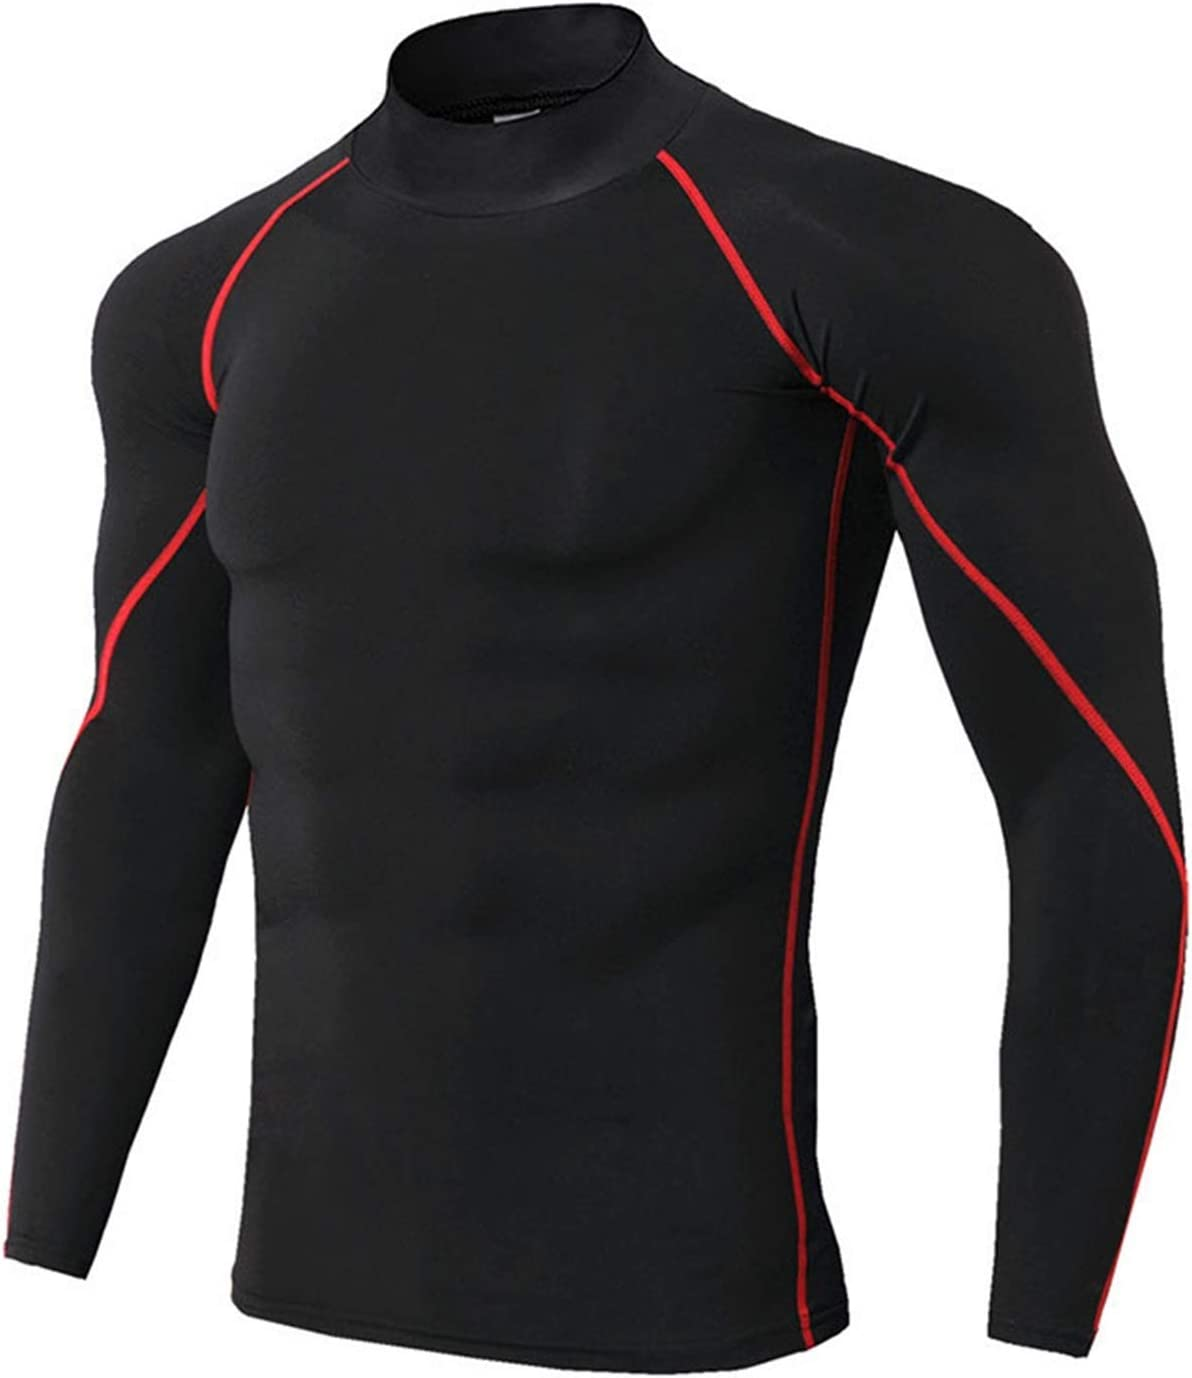 Glqwe Thermal Underwear for Men high Collar Sport Thermo Shirt Quick Dry Compressed Underwear Clothes Men (Color : Red sew, Size : Large)